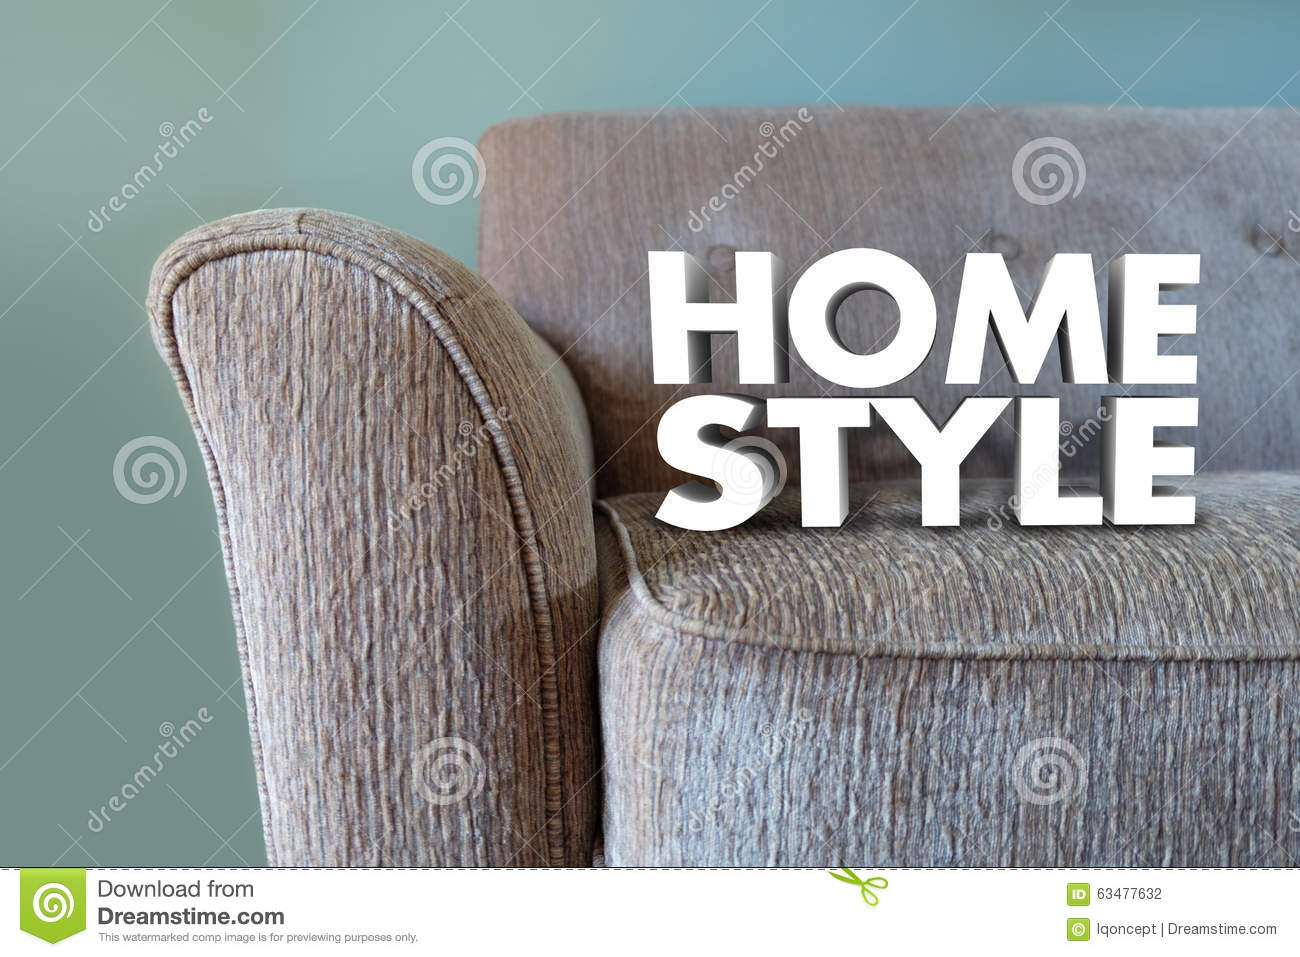 Home Style Couch Furniture Interior Design Decor Stock Illustration     Home Style Couch Furniture Interior Design Decor